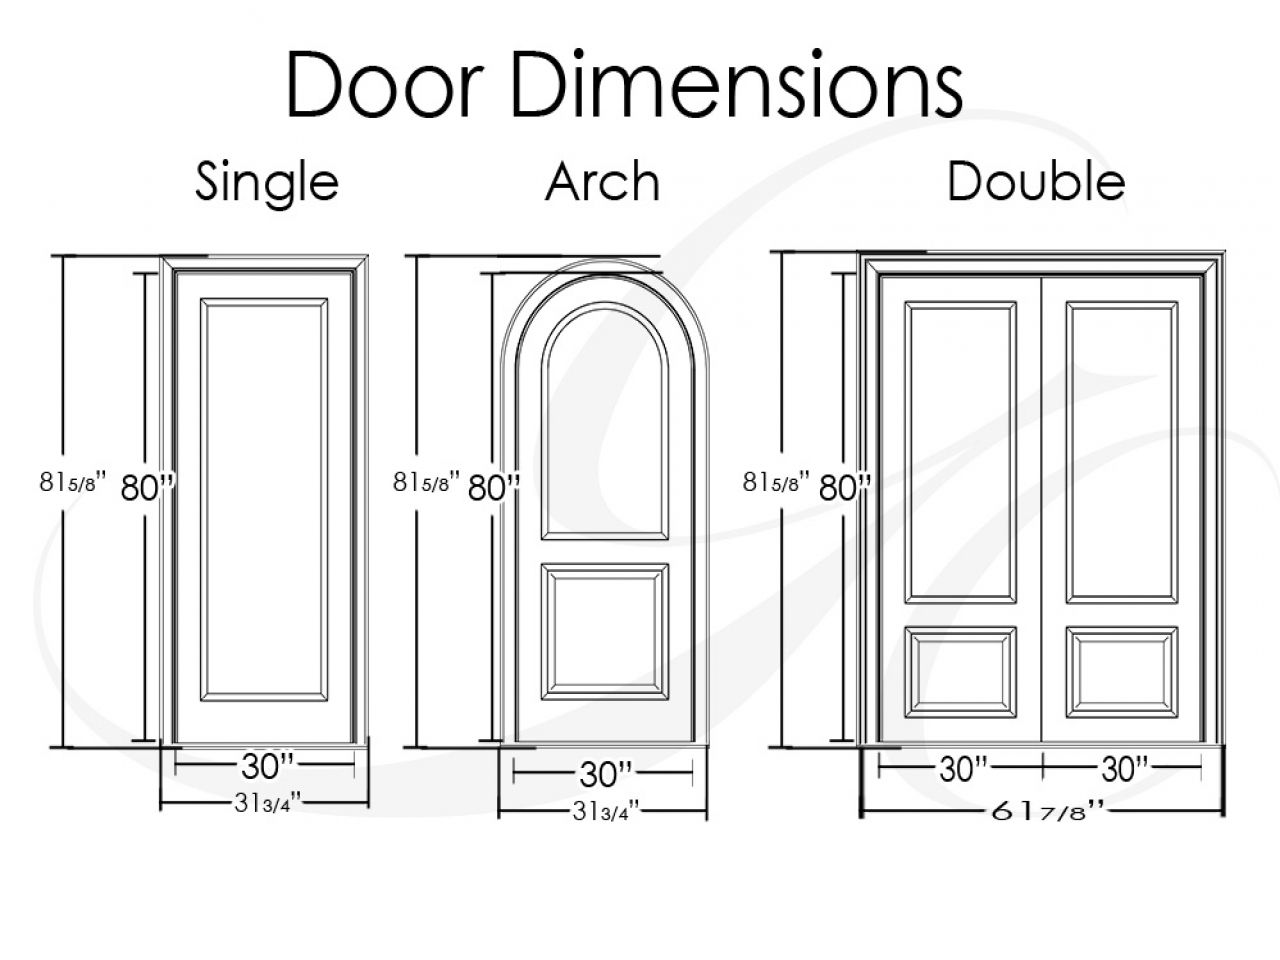 Superieur Double Door Dimensions Standard Standard Size Front Double Door 311a9fb3f2652a0b  1,280×960 Pixels